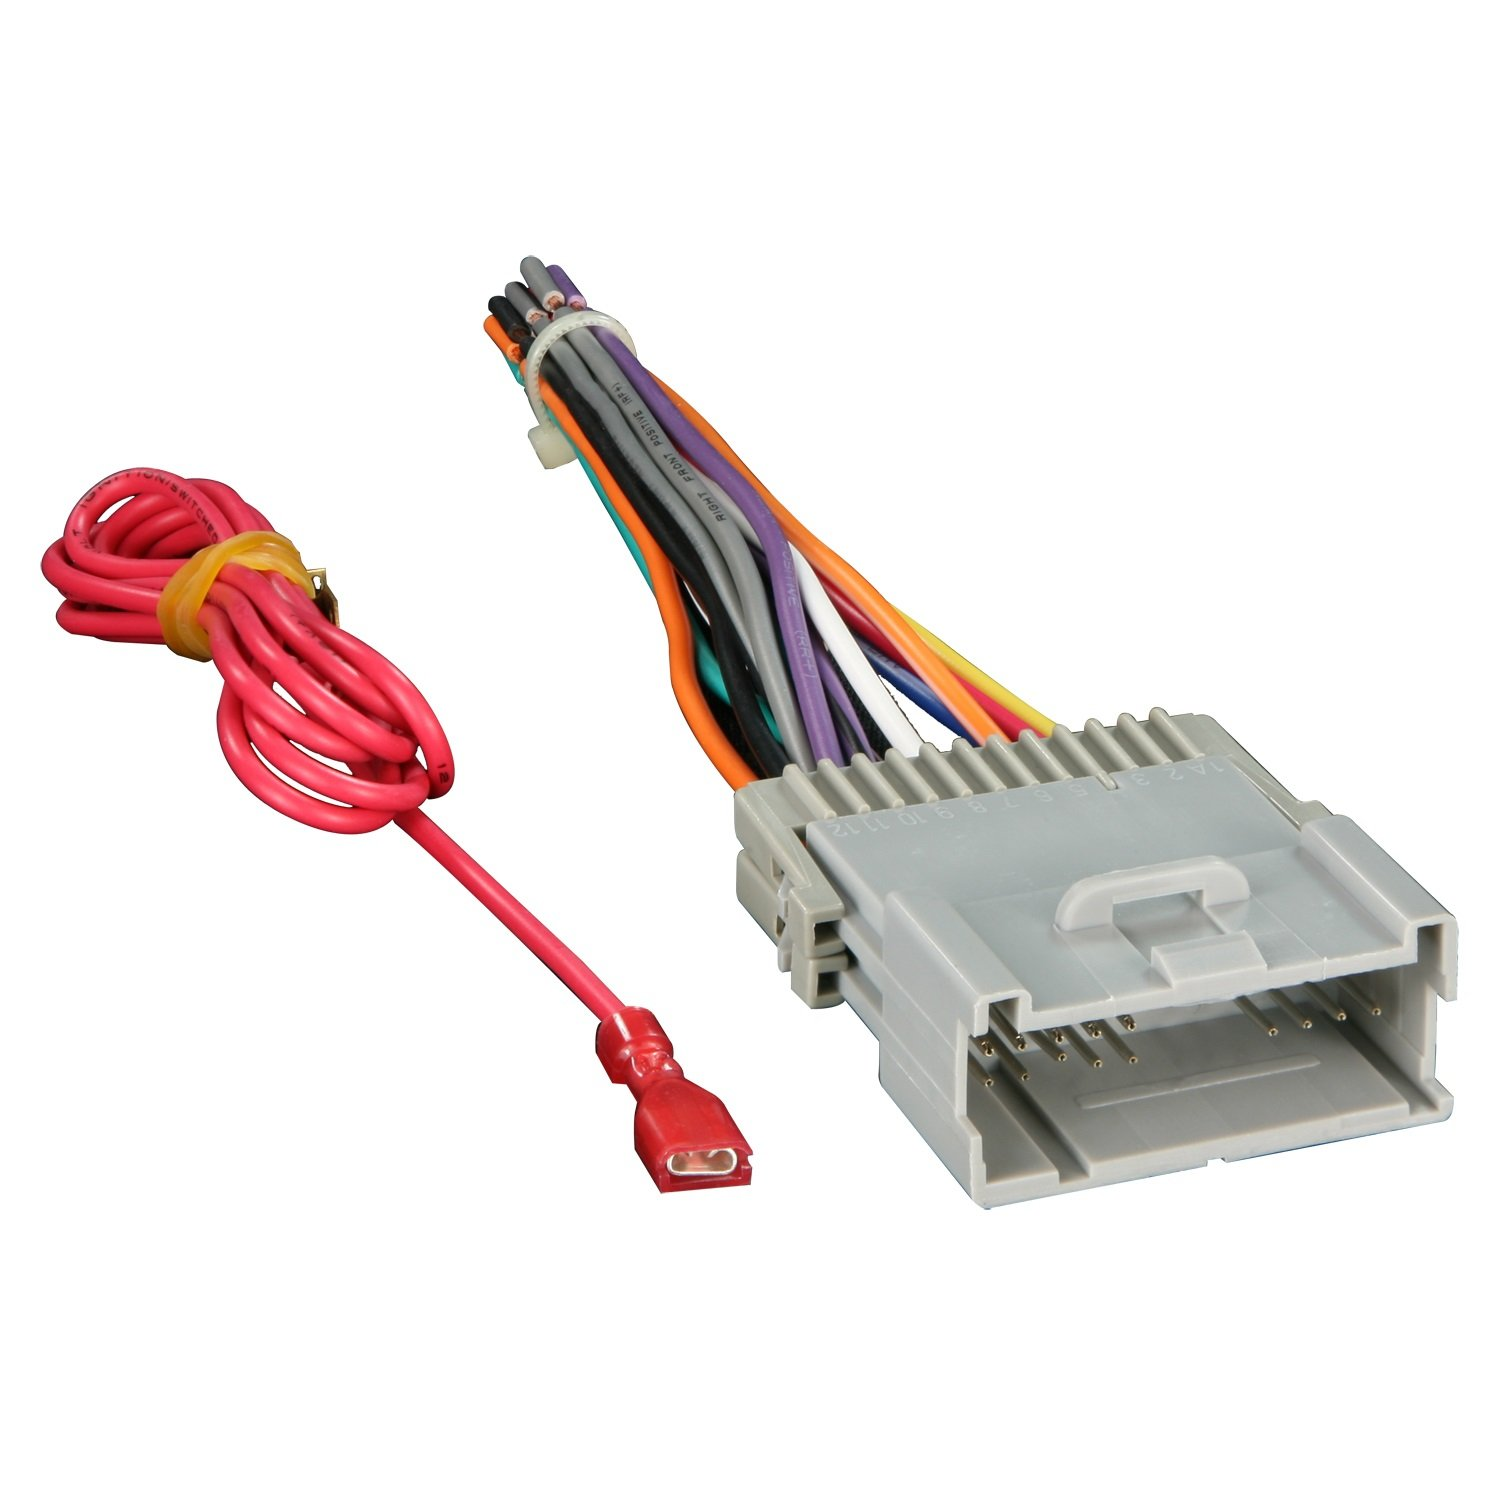 61eewxp9orL._SL1500_ amazon com metra 70 2003 radio wiring harness for gm 98 08 aftermarket ls wiring harness at edmiracle.co